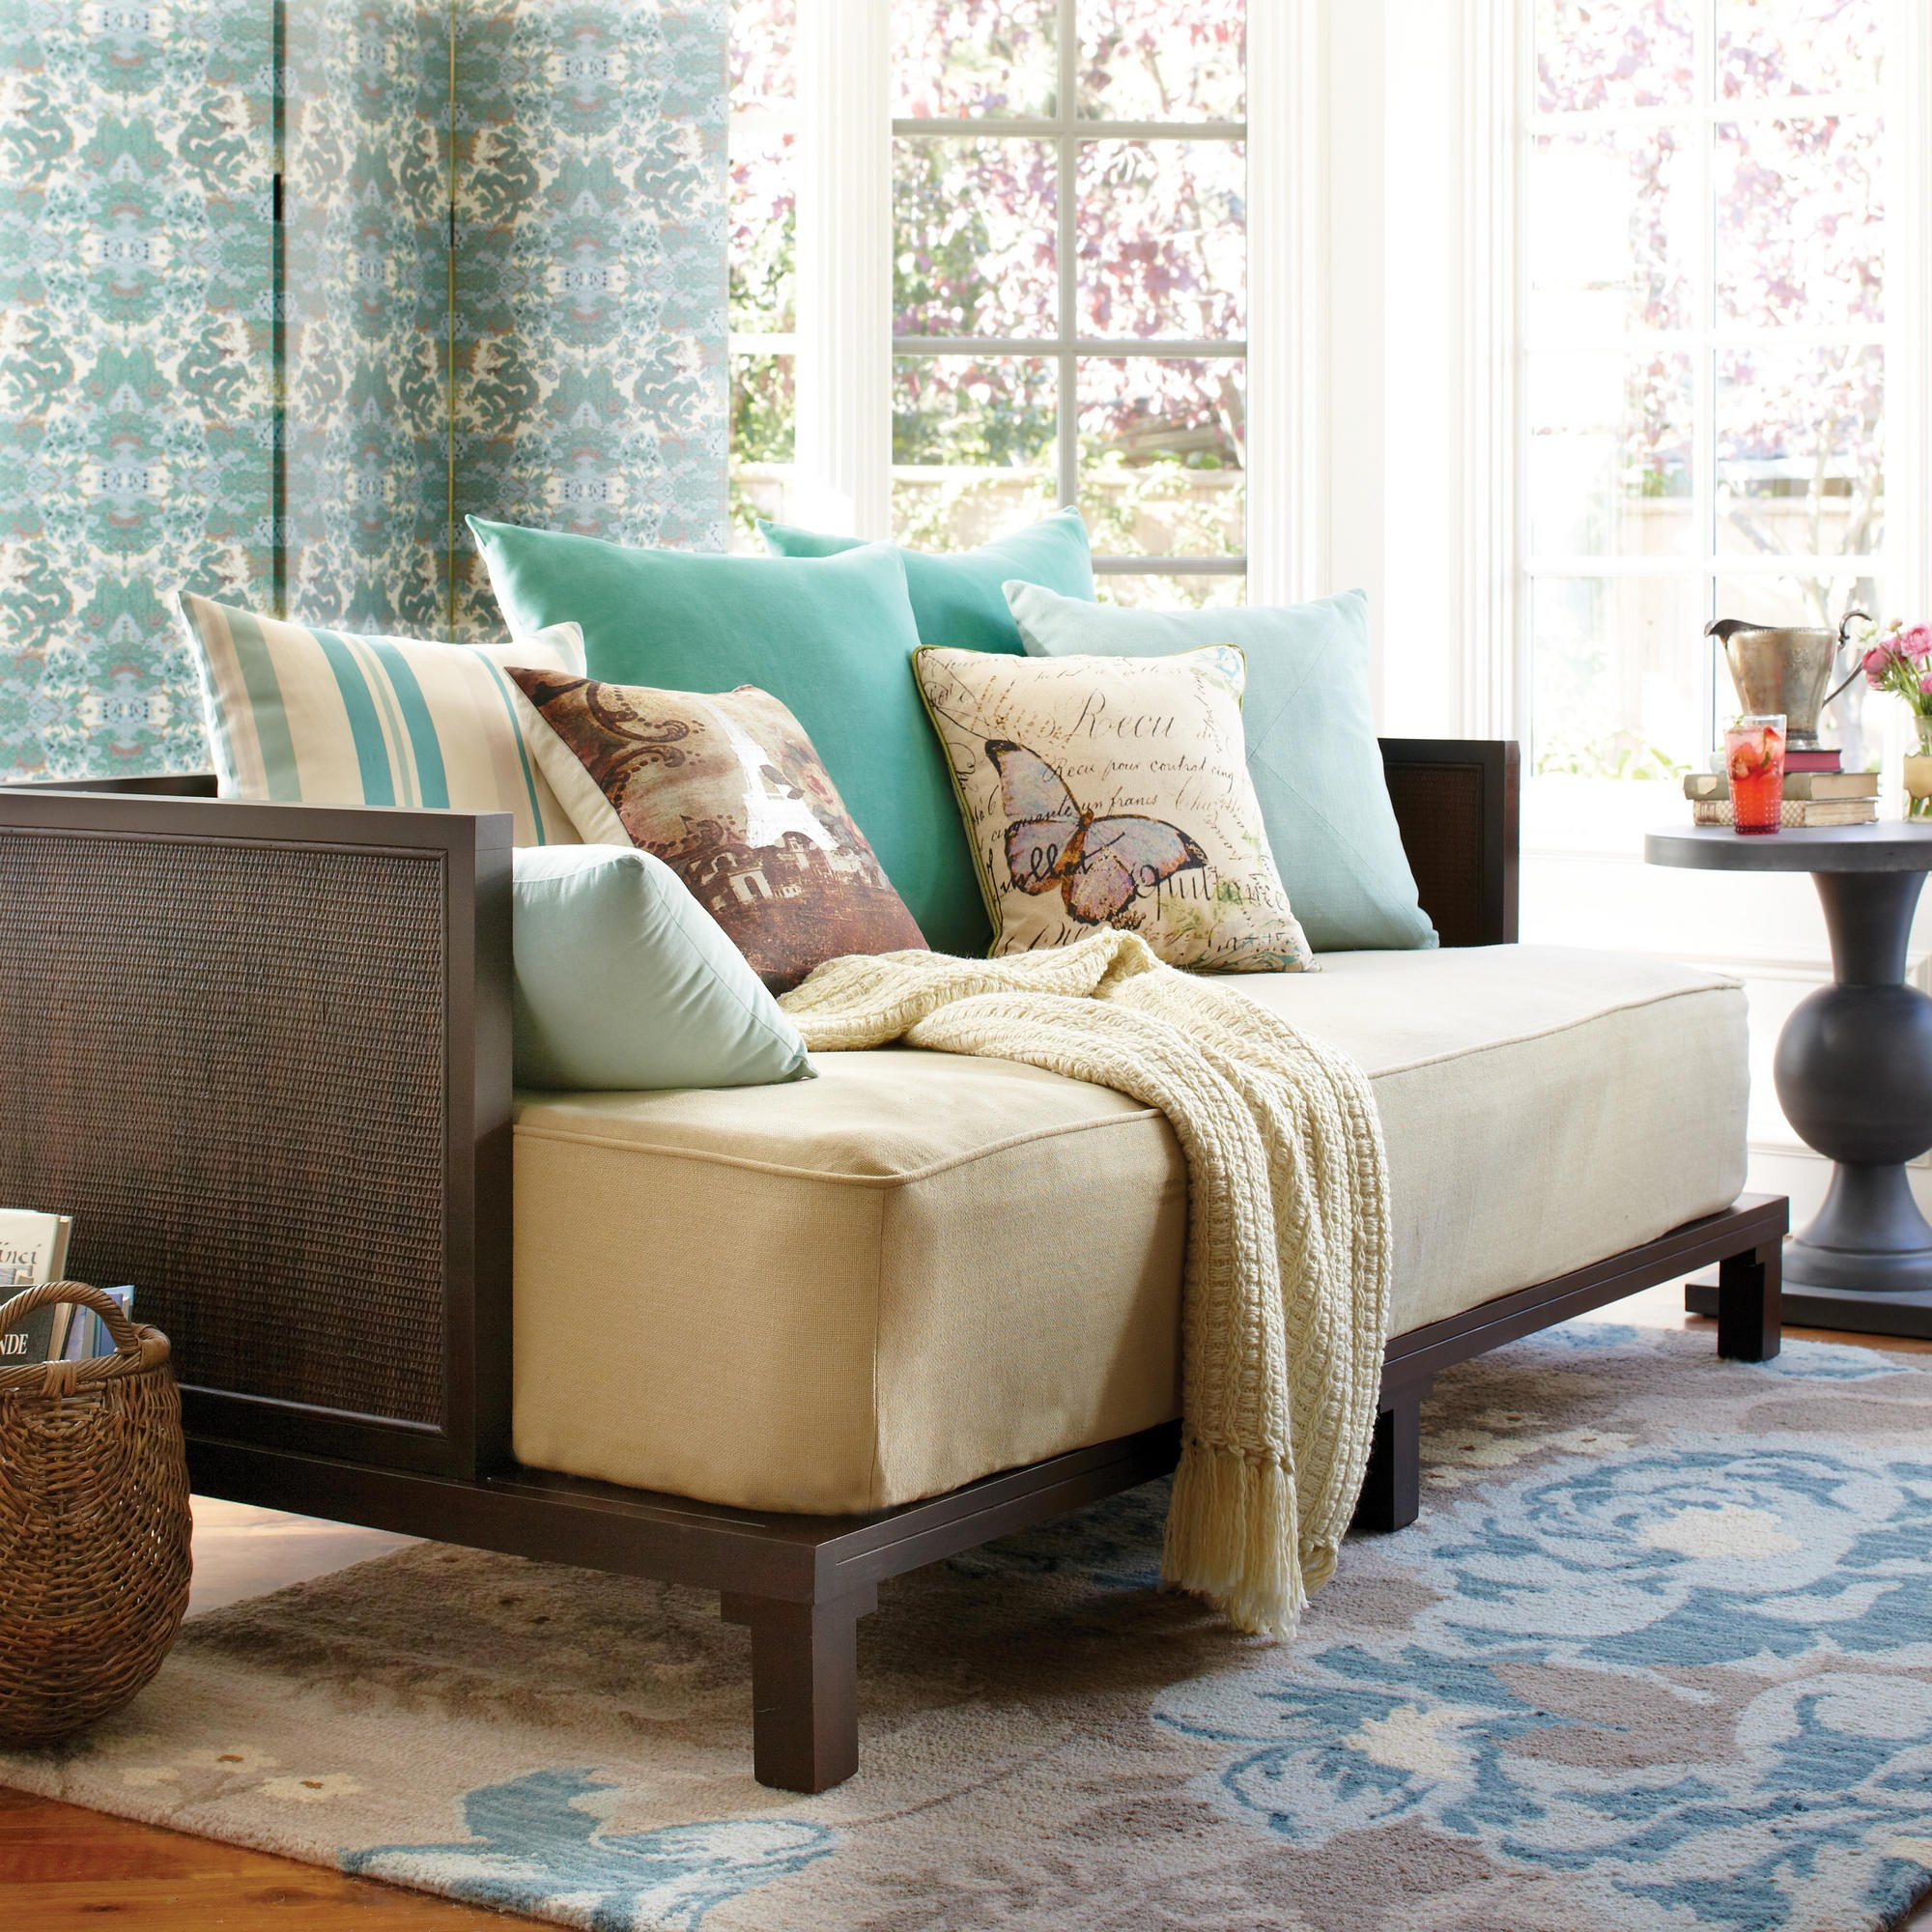 Furniture Excellent Daybed Couch For fortable Sofas Design — Nohatsmarketing